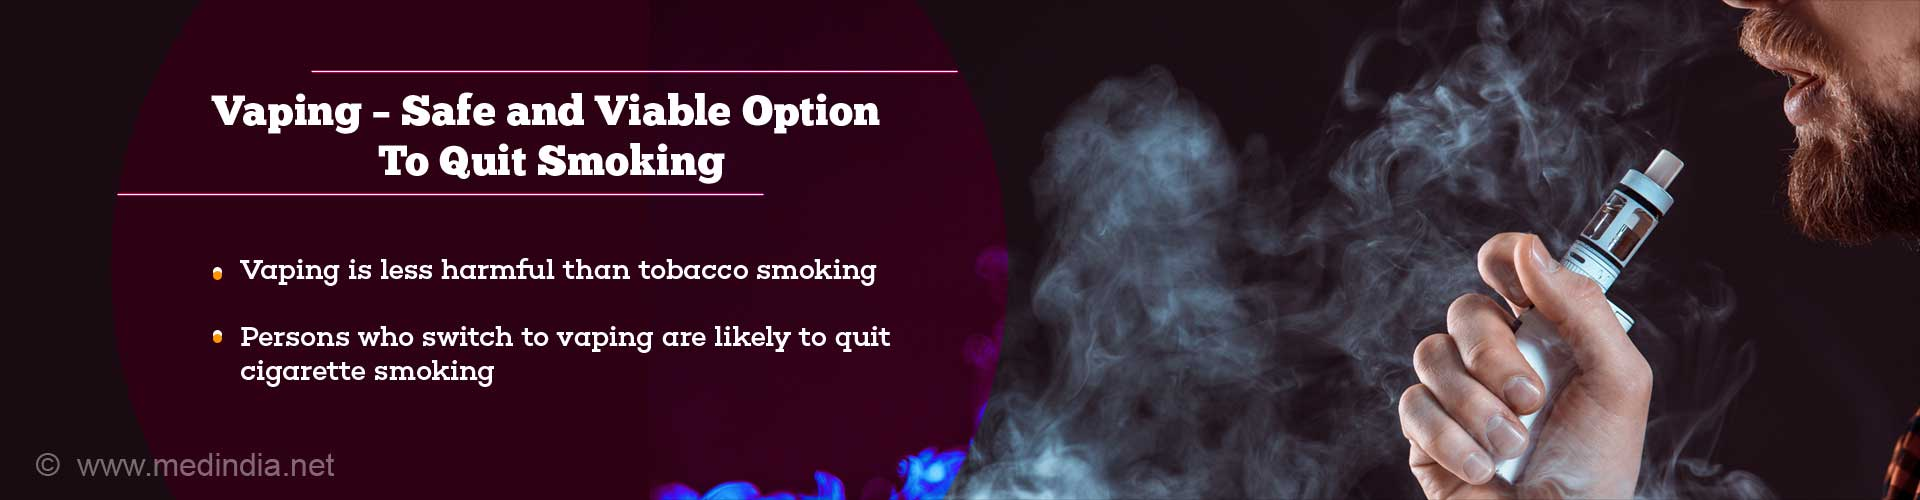 E-Cigarettes May Help Even Die Hard Smokers Kick the Habit